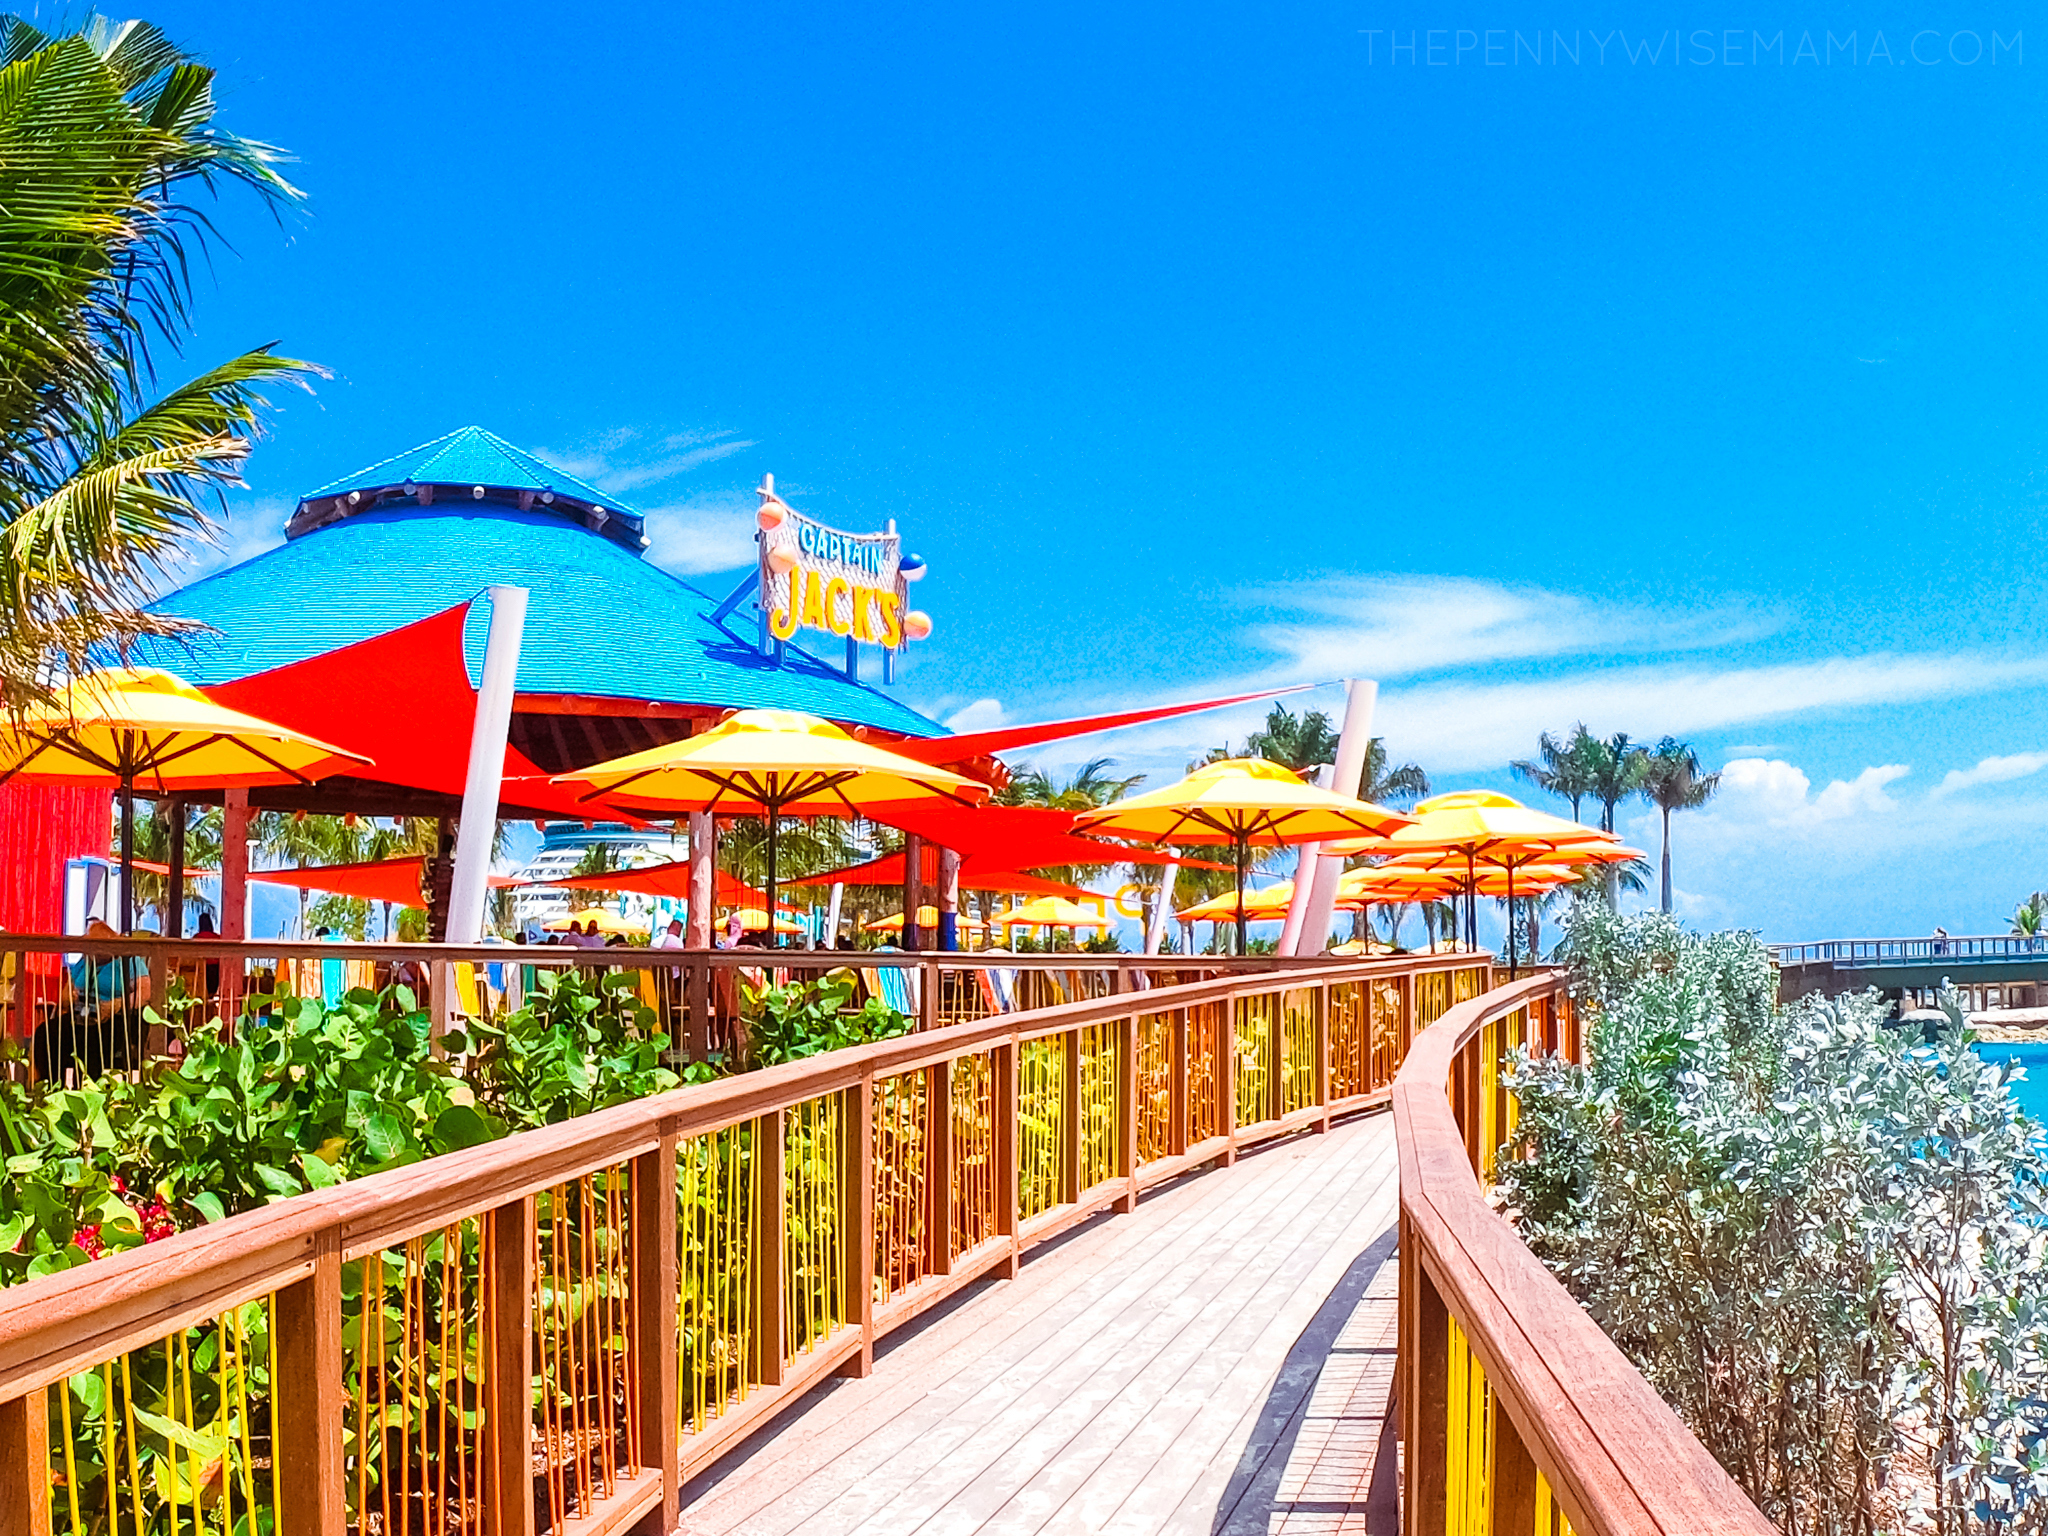 Captain Jack's at Perfect Day at CocoCay